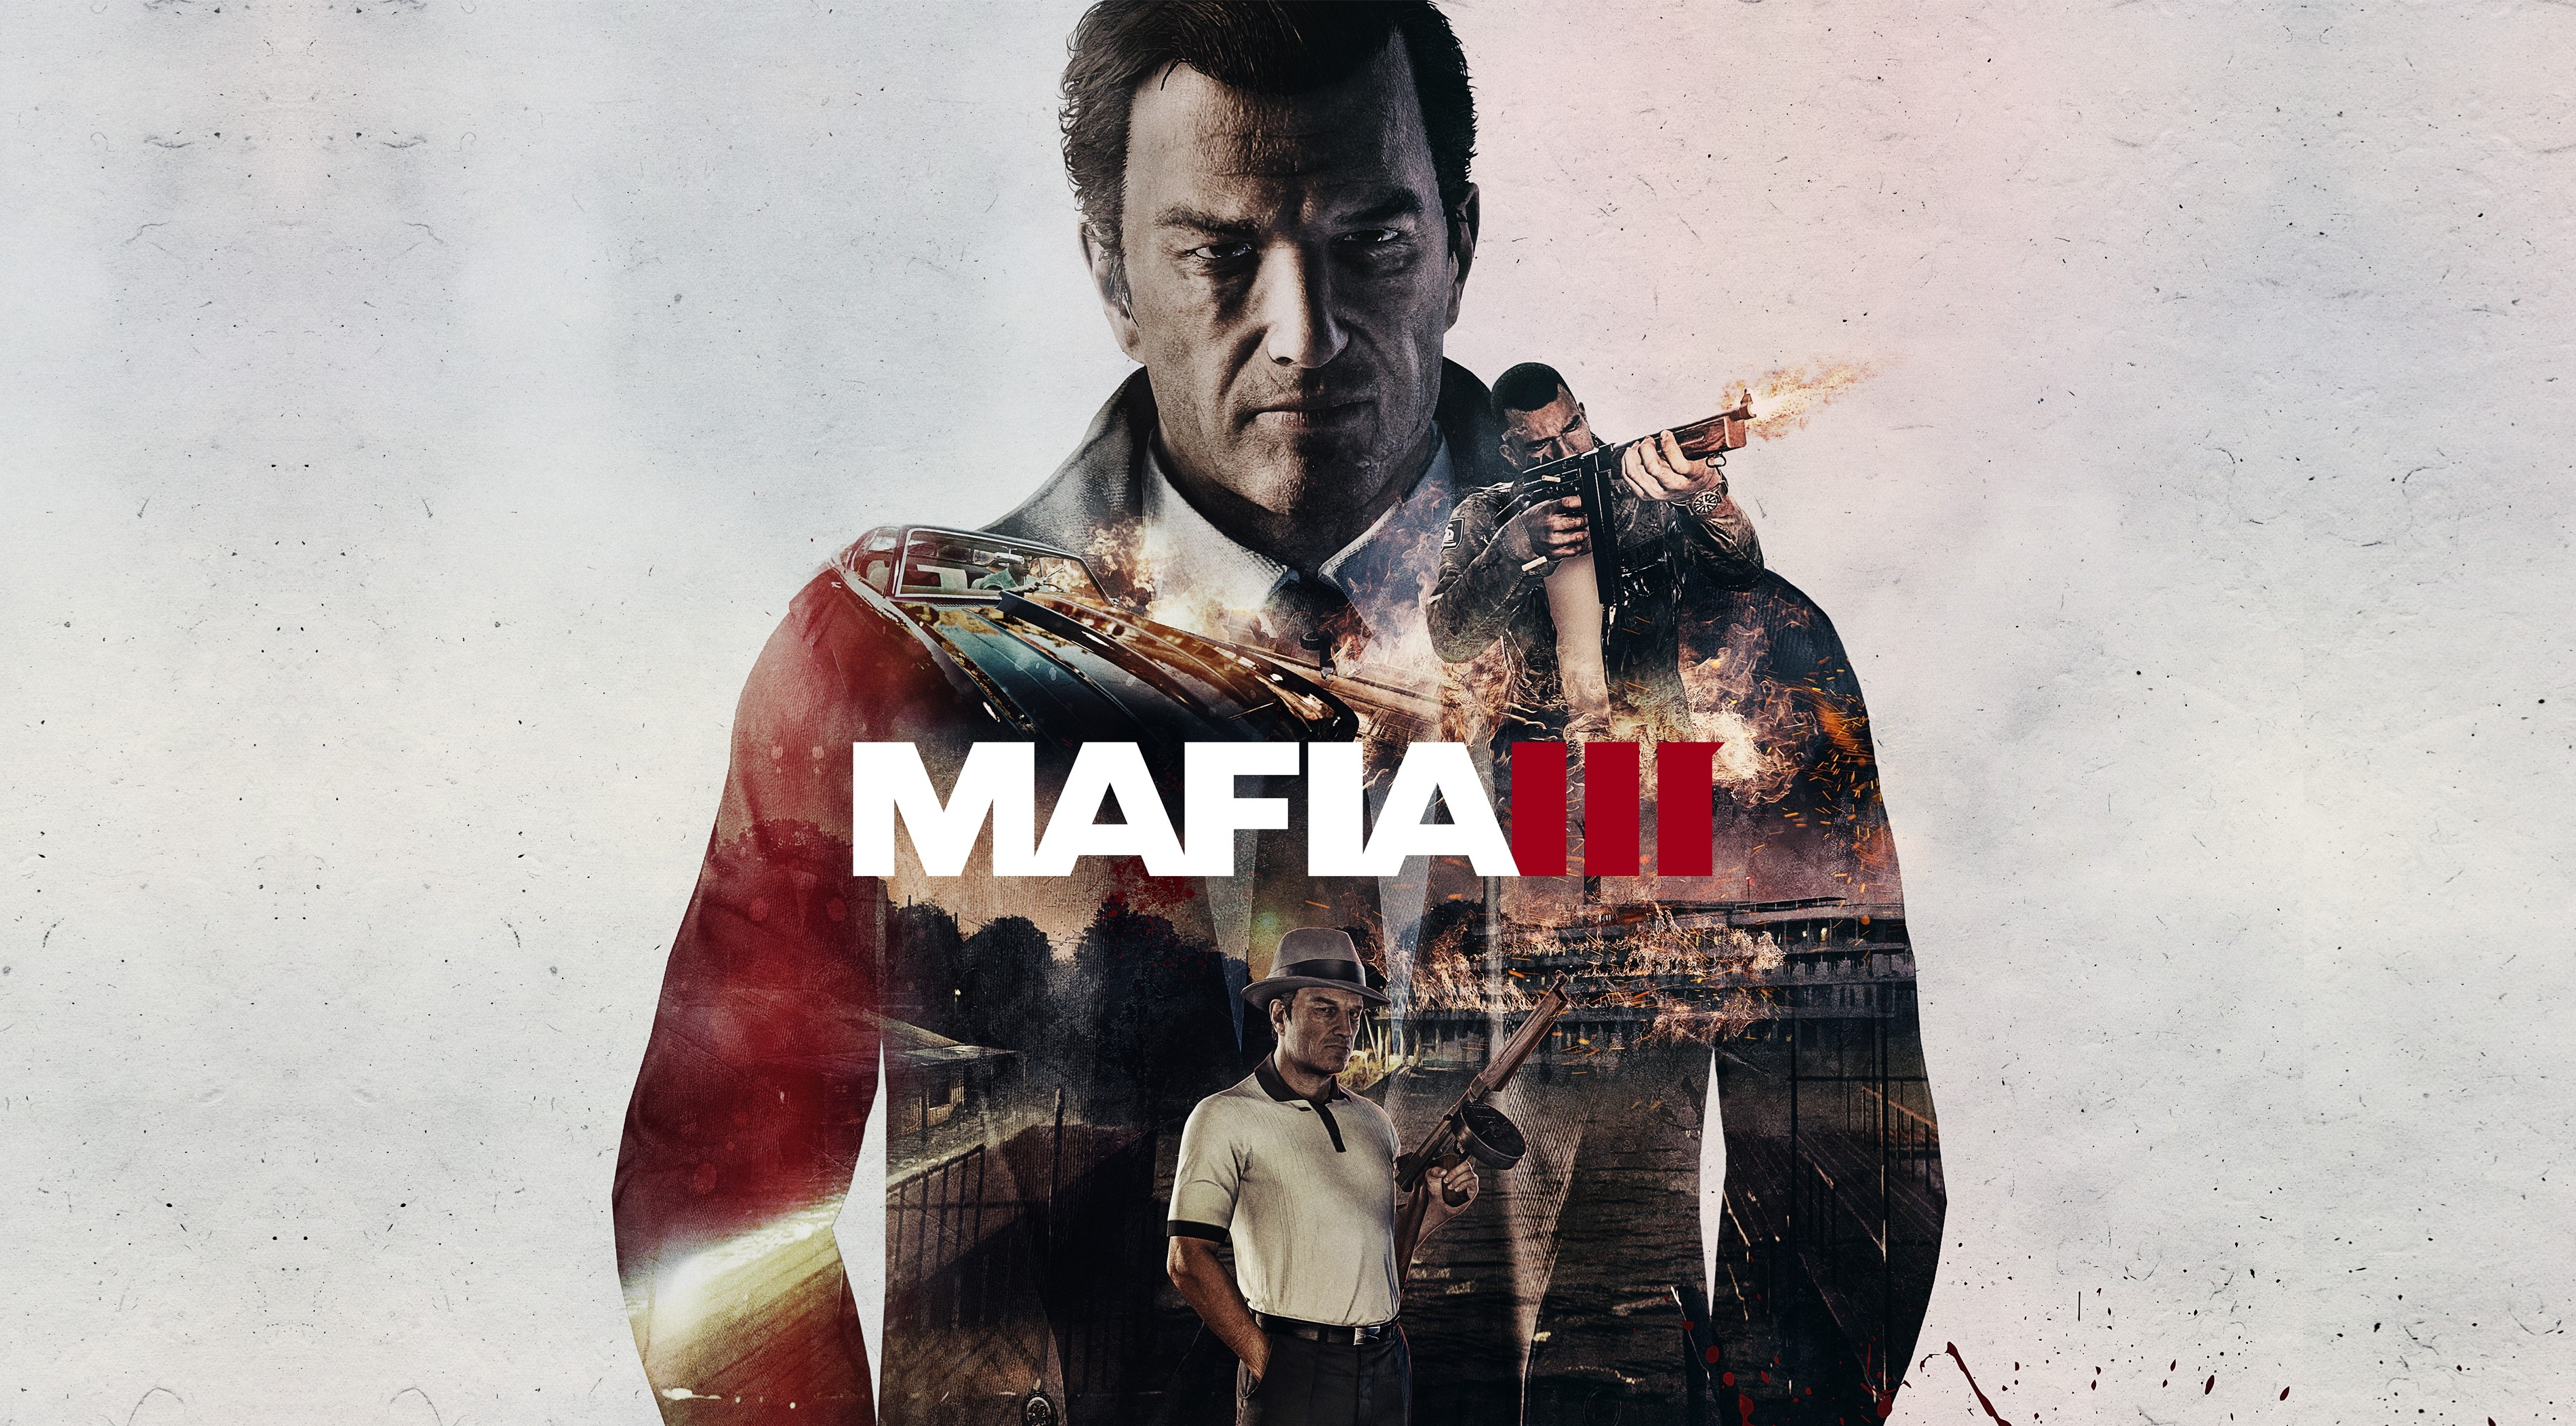 Hd wallpaper quotes for android - Wallpaper Mafia Iii Best Games 2016 Pc Ps4 Xbox One